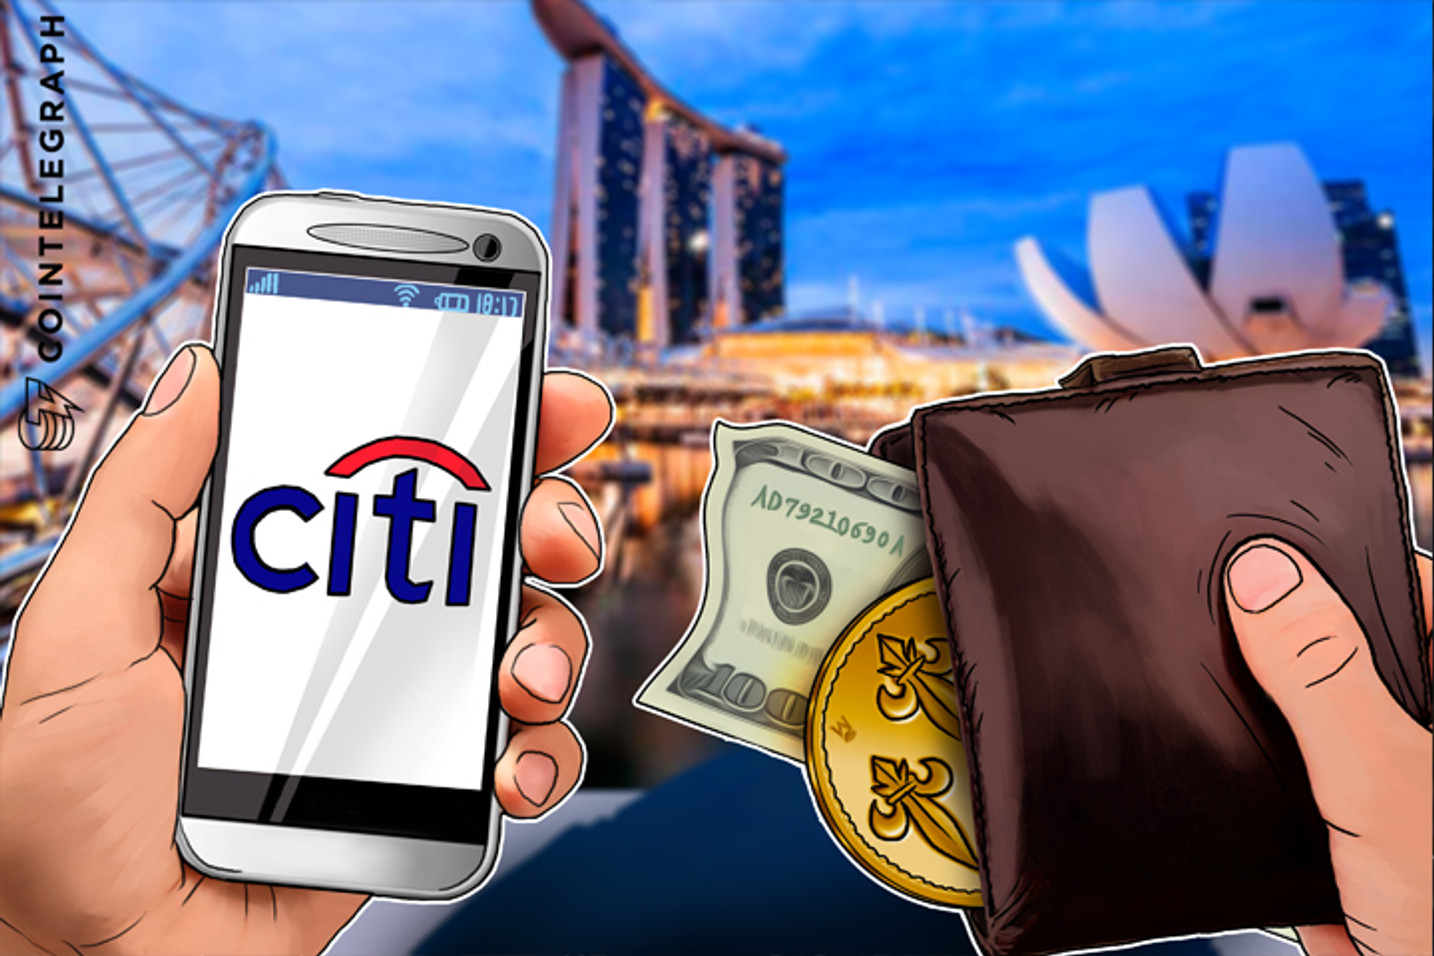 Citi Introduces Global Digital Wallet, First Launch in Singapore, Australia and Mexico